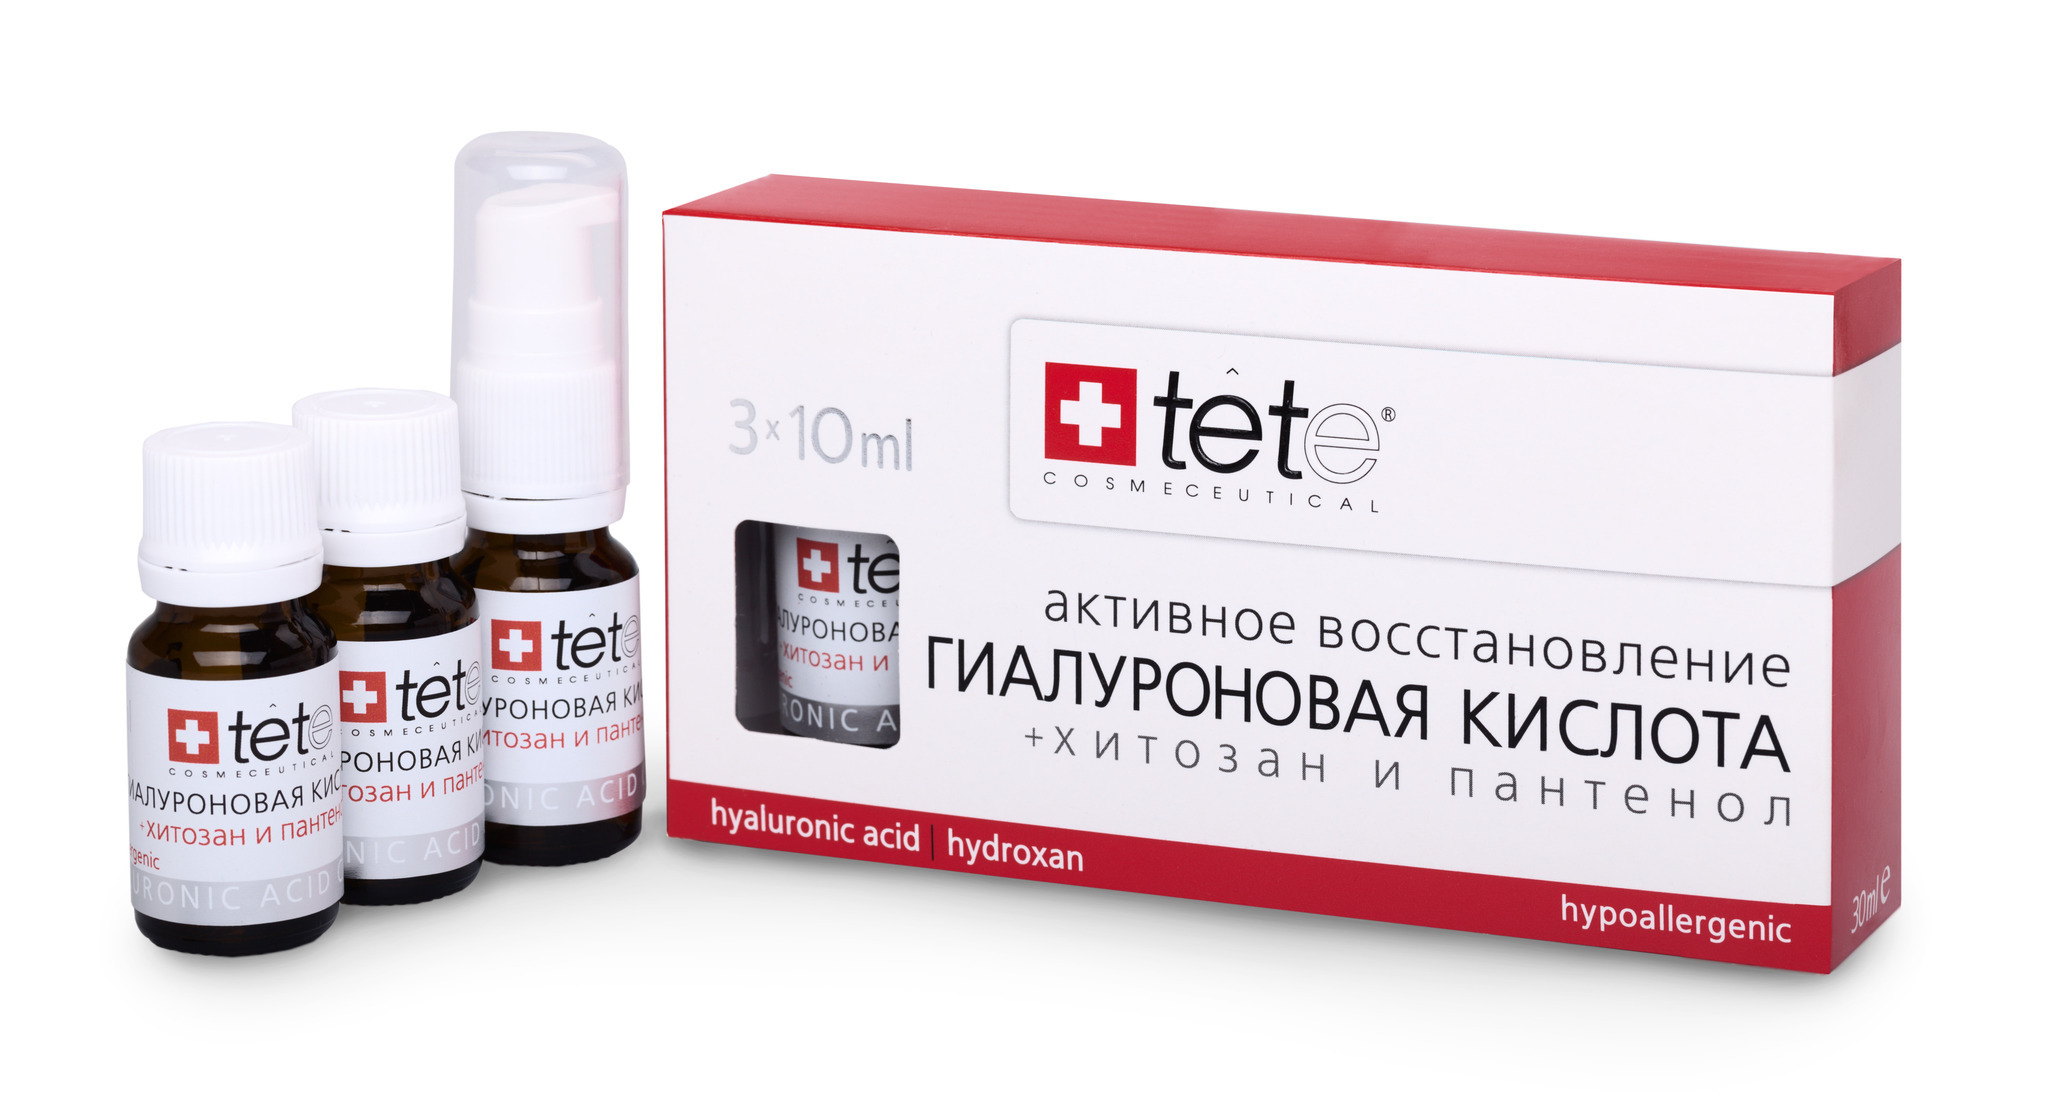 Гиалуроновая кислота + Хитозан / Hyaluronic acid & Hydroxan/Tete